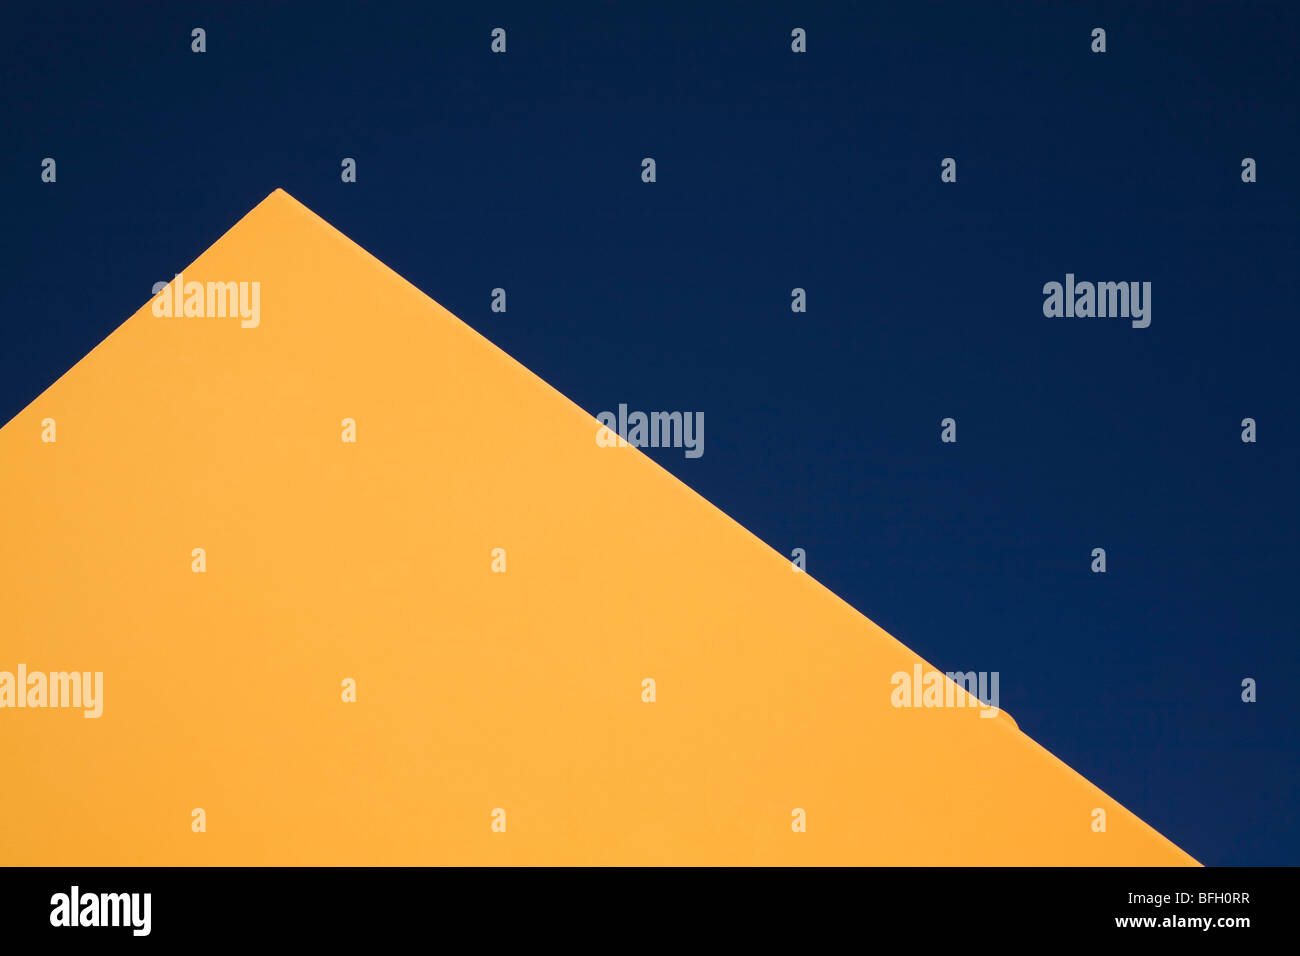 Partial view of a yellow metal shaped pyramid, against a blue sky. Laval, Quebec, Canada - Stock Image